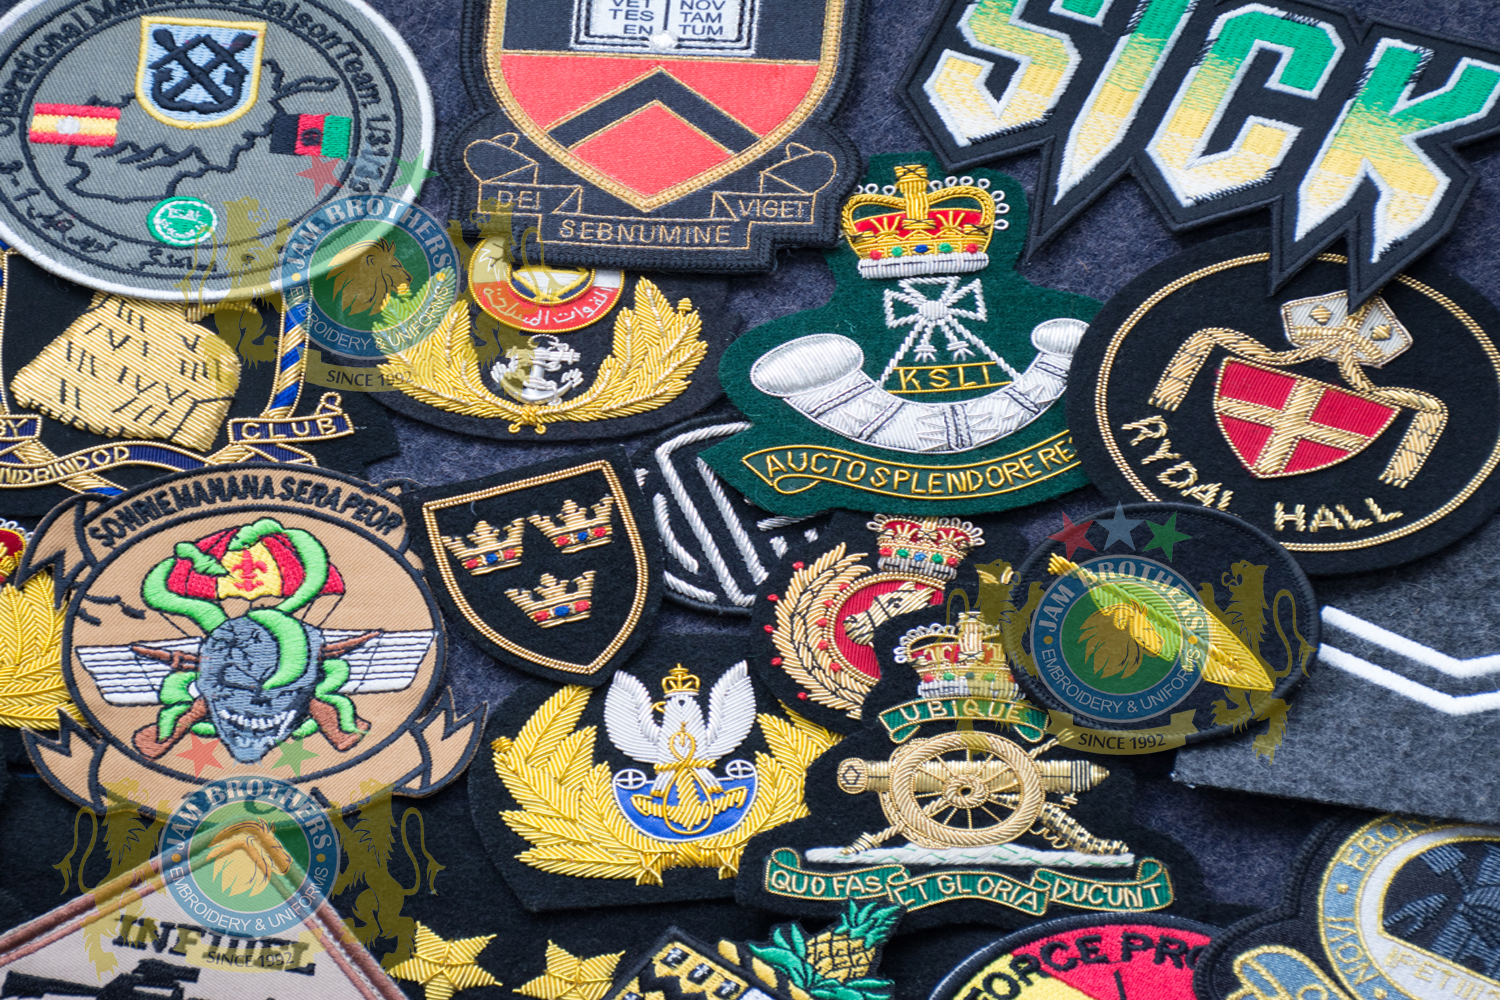 #Hand Embroidery #BullionEmbroidery #TradeBadges #MessDress #Badges #Ranks #Regiment #Parade #Ceremonial #Cord #Textile #ArmedForces #BritishArmy #Army #Aiguillette #Military #MilitaryUniforms #Militaria #Insignia #Headwear #Caps #OfficerCaps #UniformCaps #PeakCaps #DressCaps #MilitaryCaps #RailCap #Berets #Glengarry #RoyalNavy #RoyalMarine #RoyalAirForce #RAF #Infantry #Armor #EME #Battalion #Medals #Ribbons #Braid #Lace #Uniforms #UniformSupplie #Police #Security #Buckles #Guards #Accoutrement #Badge #Patch #Machine #MachineEmbroidery #HandEmbroidery #Bullion #BullionBadges #BullionEmbroidery #WovenBadges #Woven # Emblems #Regiment #Regimental #OfficerCaps #PeakCaps #Soldier #Helmets #Covers #HelmetCovers #Armlets #Sliders #Epaulettes #Webbing #Chevron #Officer #ShoulderBoards #Gorgets #Tassel #Sash #Hand #HandSewn #Aviation #AviationClothing #Crest #FamilyCrest #CoatofArms #EmbroideredPillows #Cords #Aiguillettes #CapCords #ChinCord #DressCord #SwordKnot #Tassels #WhistleCord #Lanyard #Knots #Banners #ClanBadges #Peaks #Visor #Wings #CapBadges #Pennants #HonorCaps #OfficerCaps #SportsCap #Masonic #Aprons #MasonicAprons #Collars #MasonicCollars #Gloves #MasonicGloves #MasonicPatches #Patches #Regalia #MasonicRegalia #Freemason #Braid #Chevron #Cuffs #Fringes #Sashes #HeadGear #FieldGear #England #USA #Poland #ArmedForces #Schools #Colleges #University #Sialkot #Pakistan Sialkot Pakistan PeakCaps OfficerCaps ShoulderRanks BullionBadges UniformAccessories MilitaryUniforms DressCap TradeBadge RankMarking WireBadges Army Airforce Navy Police Hand Machine Embroidery Badge Emblems Patches Bullion Wire Silver Gold